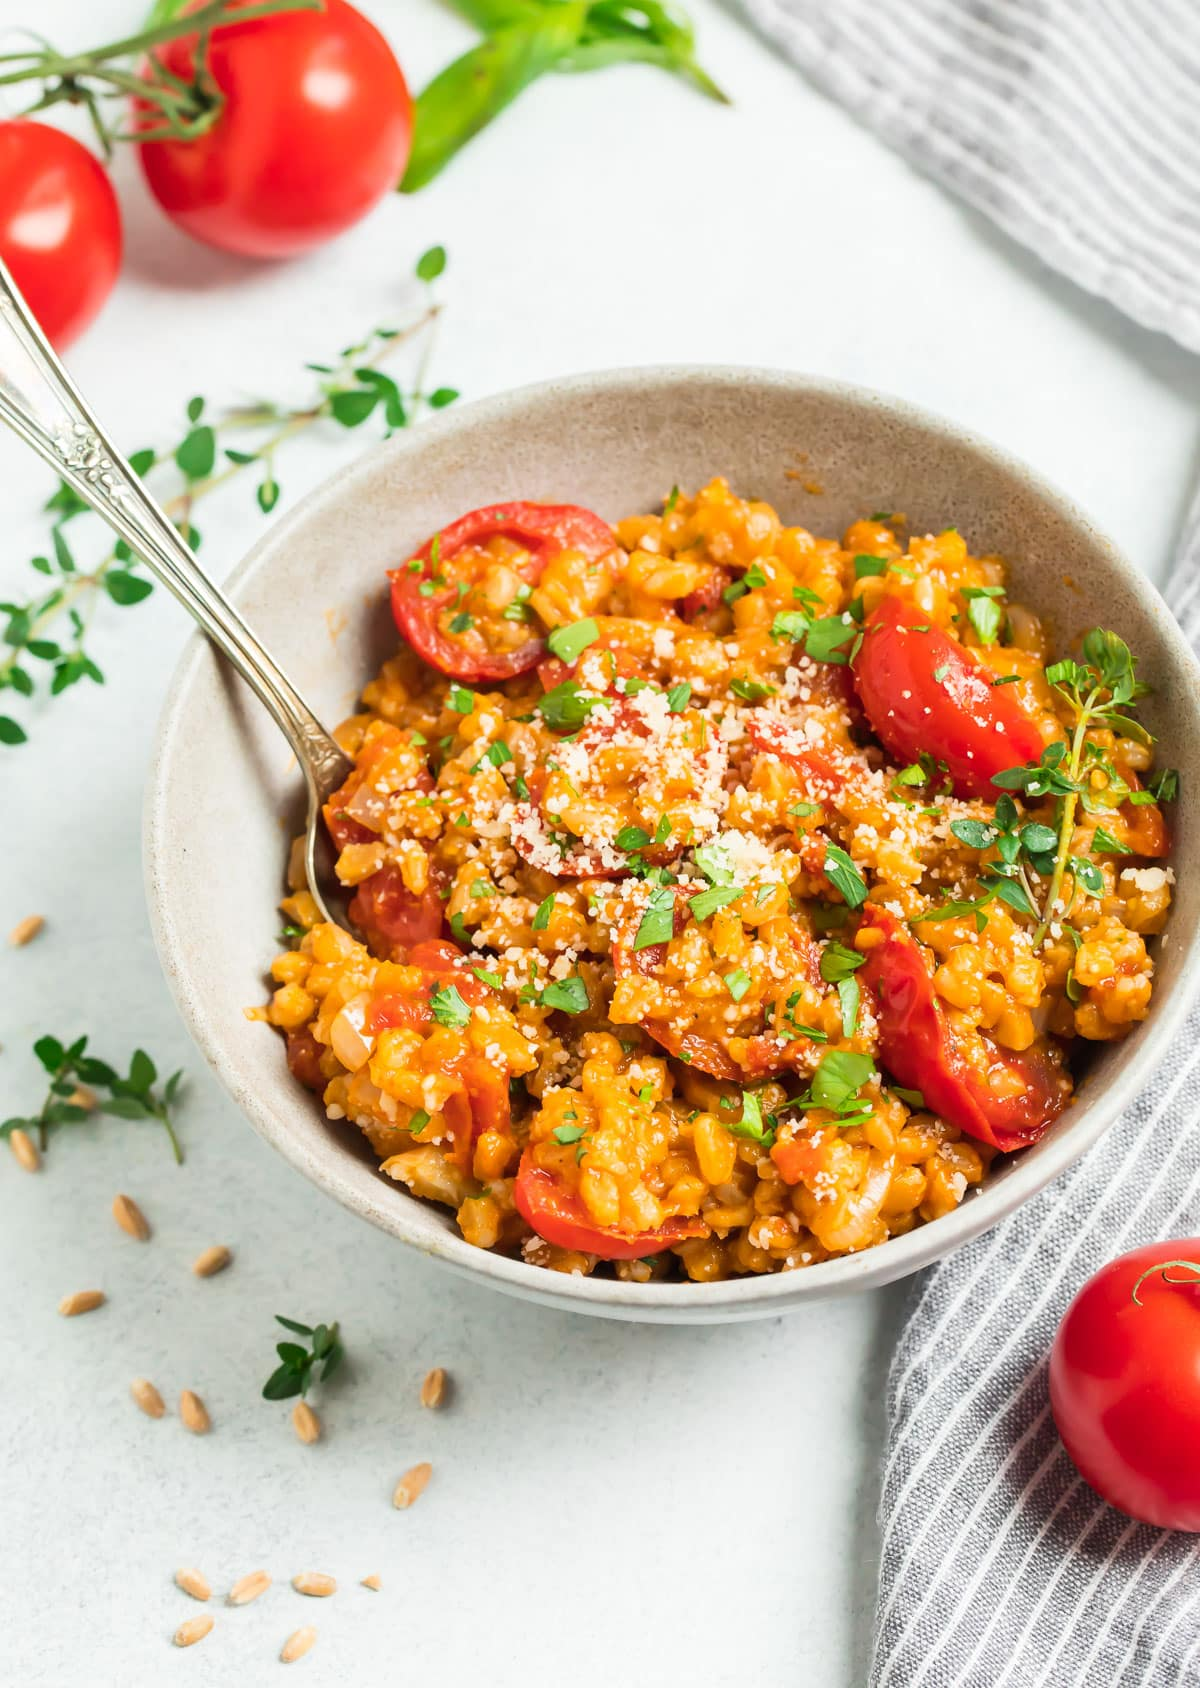 Tomato Farro Risotto garnished with herbs and Parmesan in a bowl with a spoon